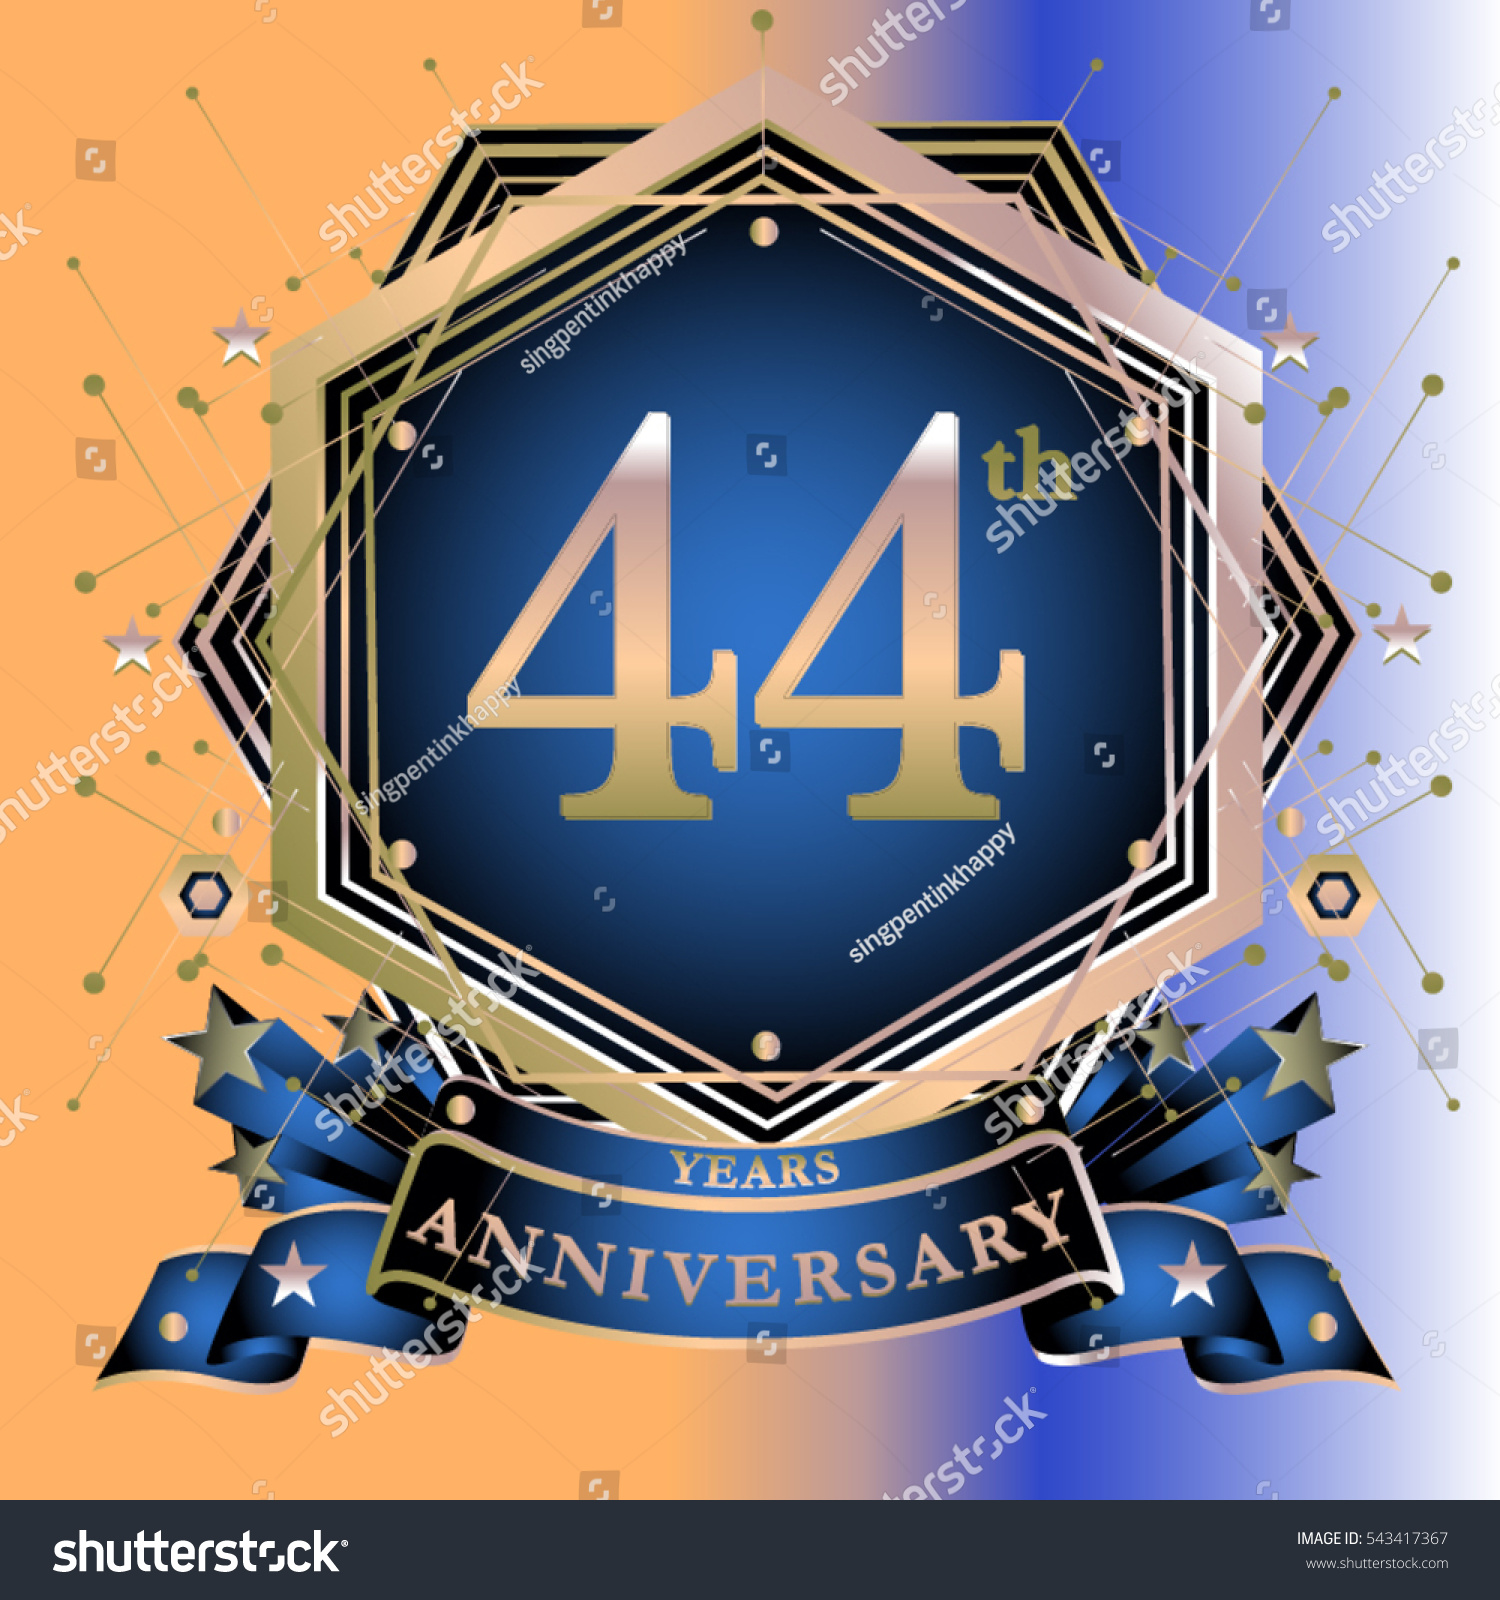 44 years anniversary logo celebration ring stock vector 543417367 44 years anniversary logo celebration with ring and ribbon symbol and template for greeting card biocorpaavc Gallery